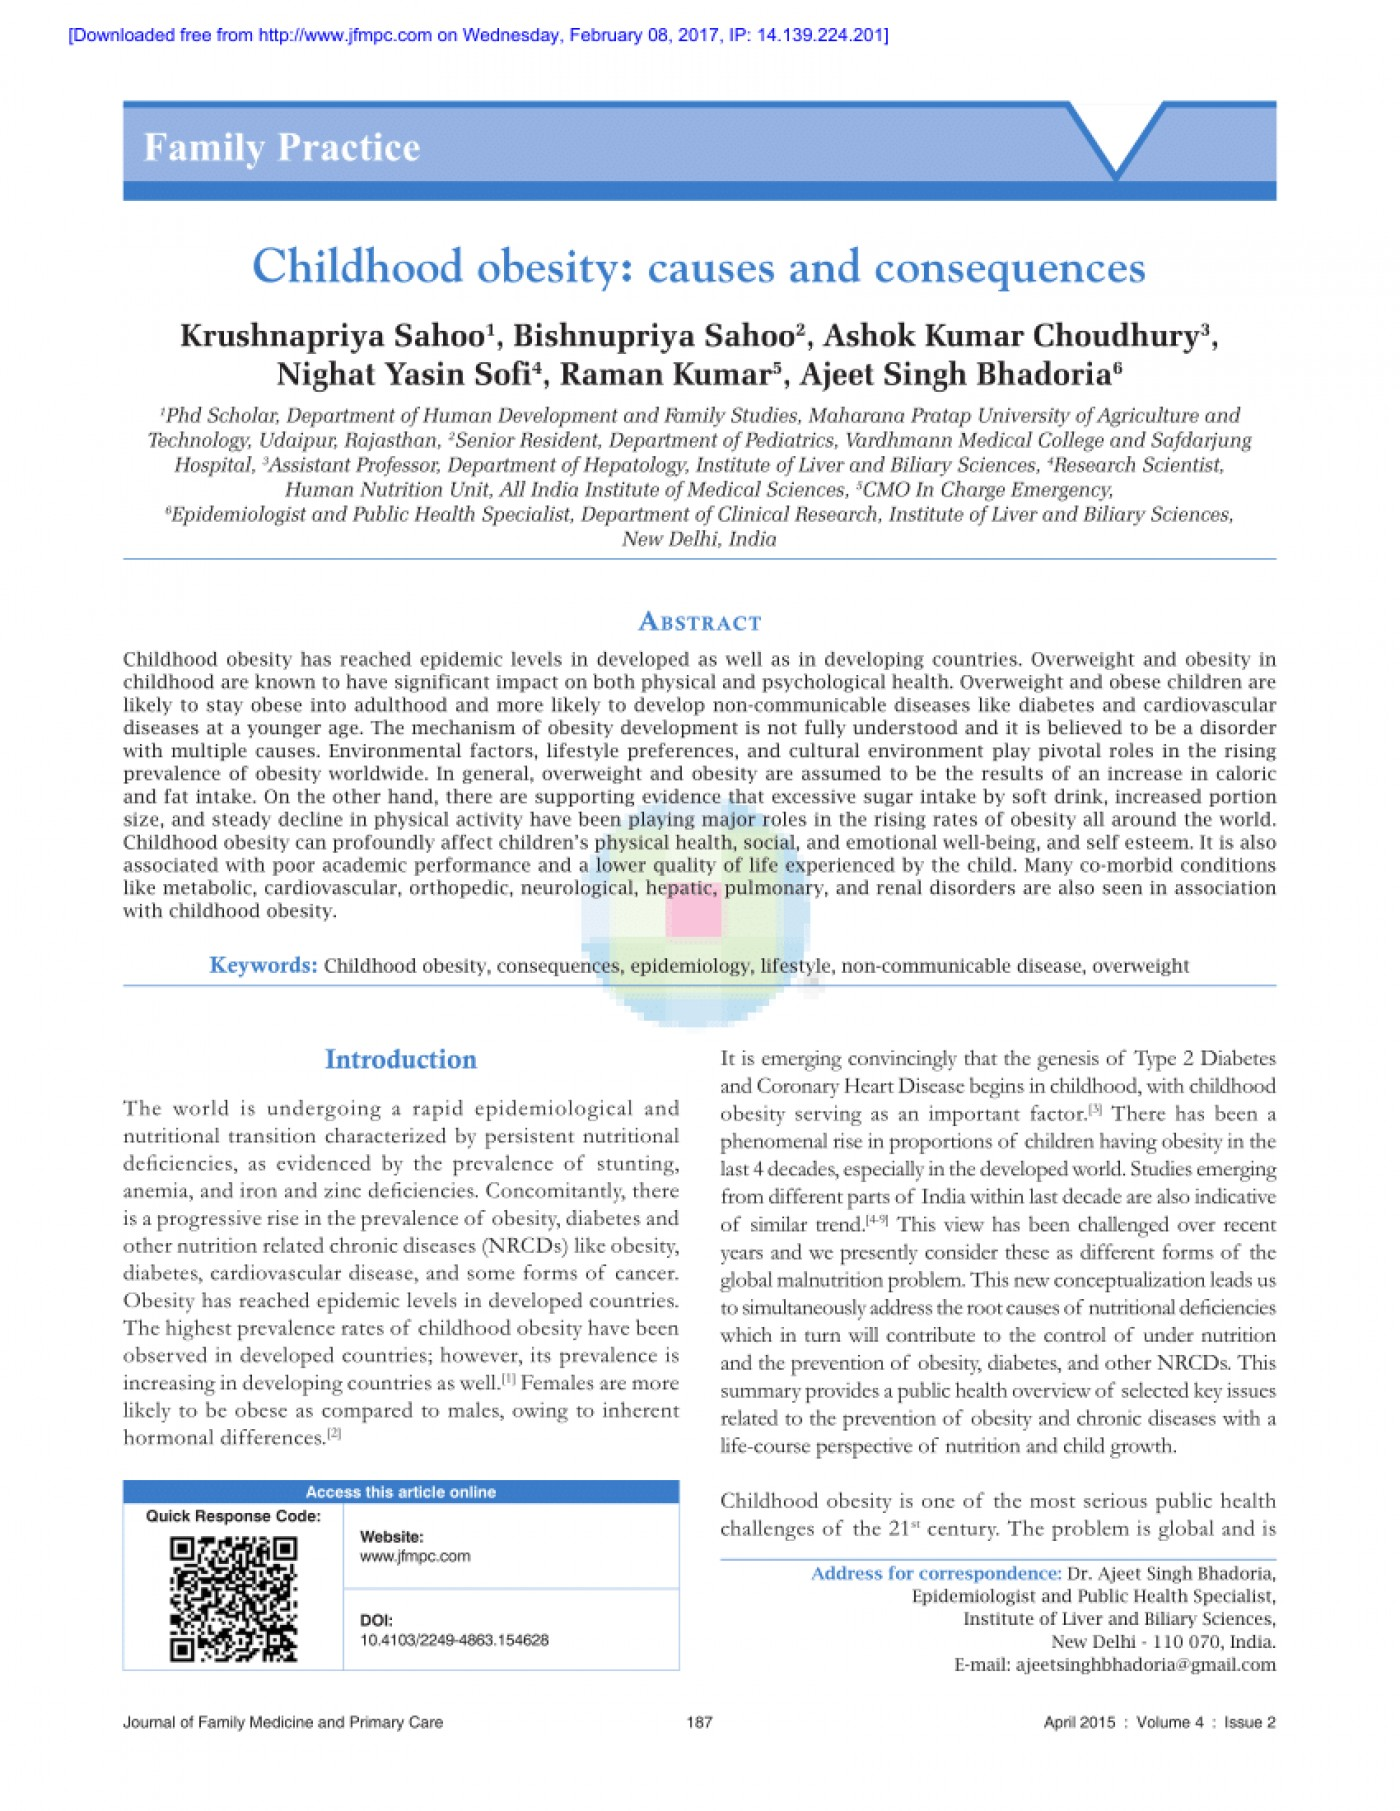 005 Primary Research Article On Childhood Obesity Largepreview Imposing 1400